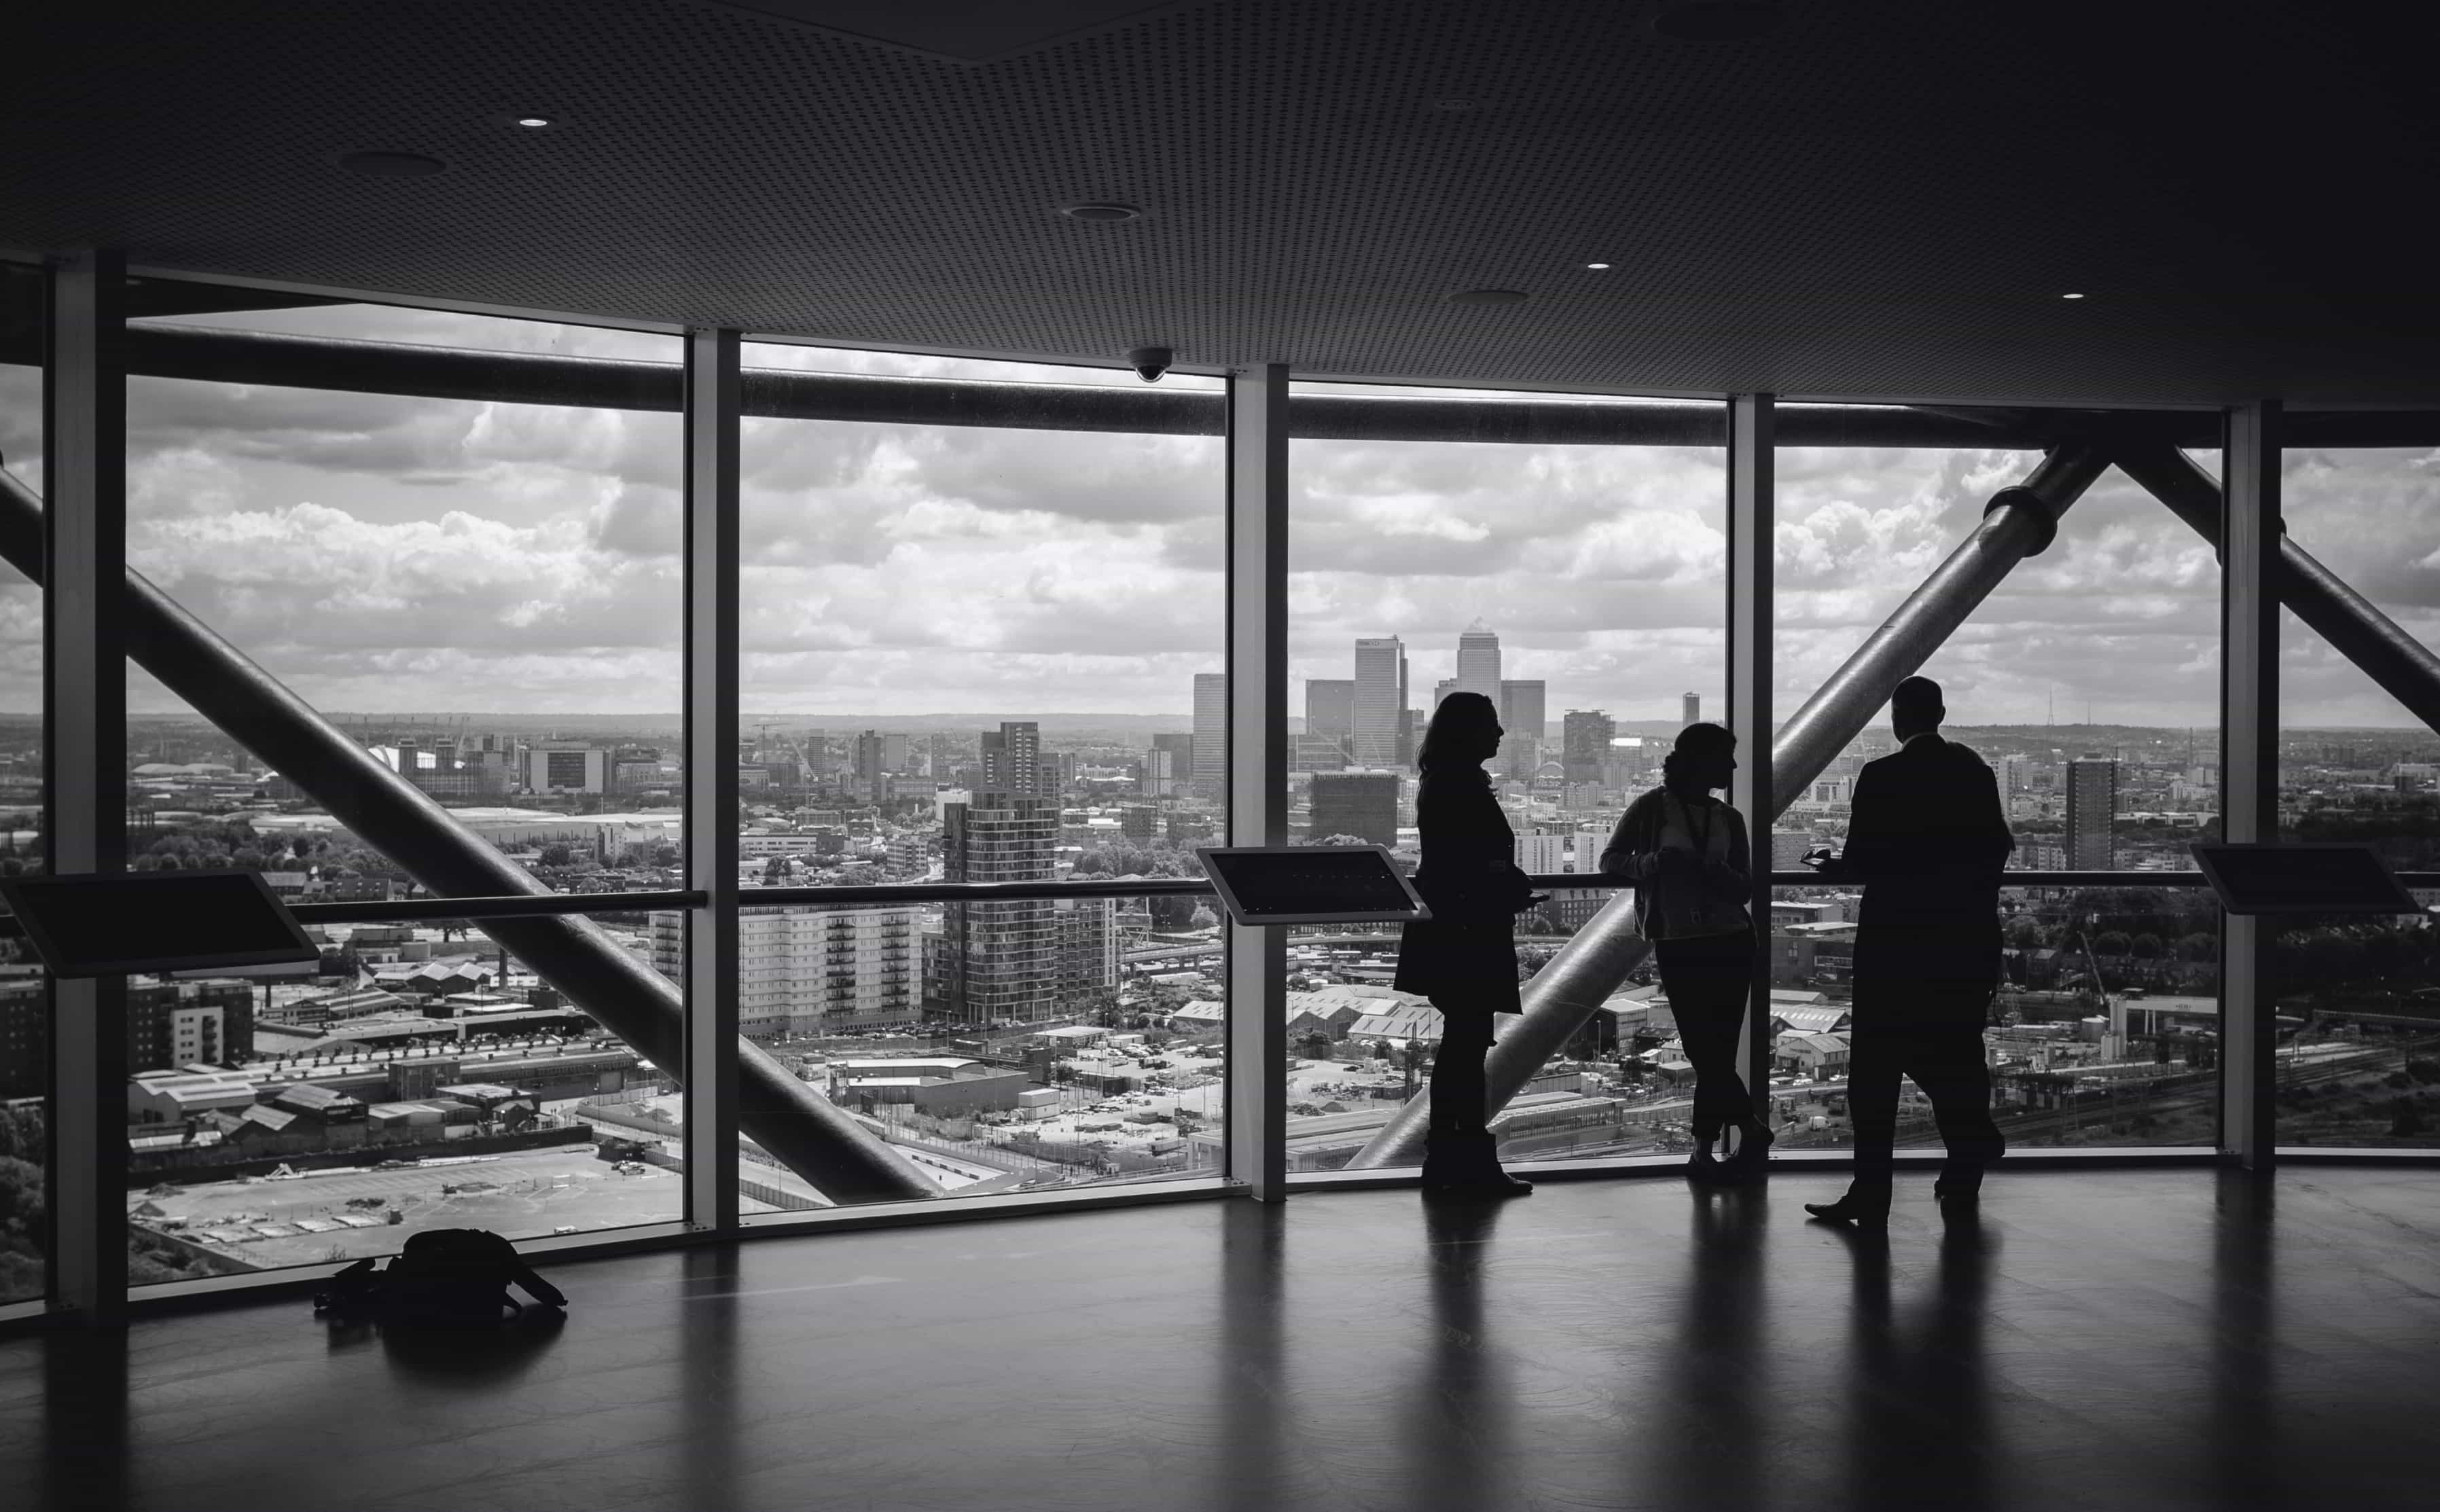 Three people talking in a commercial office building with a view of a skyline